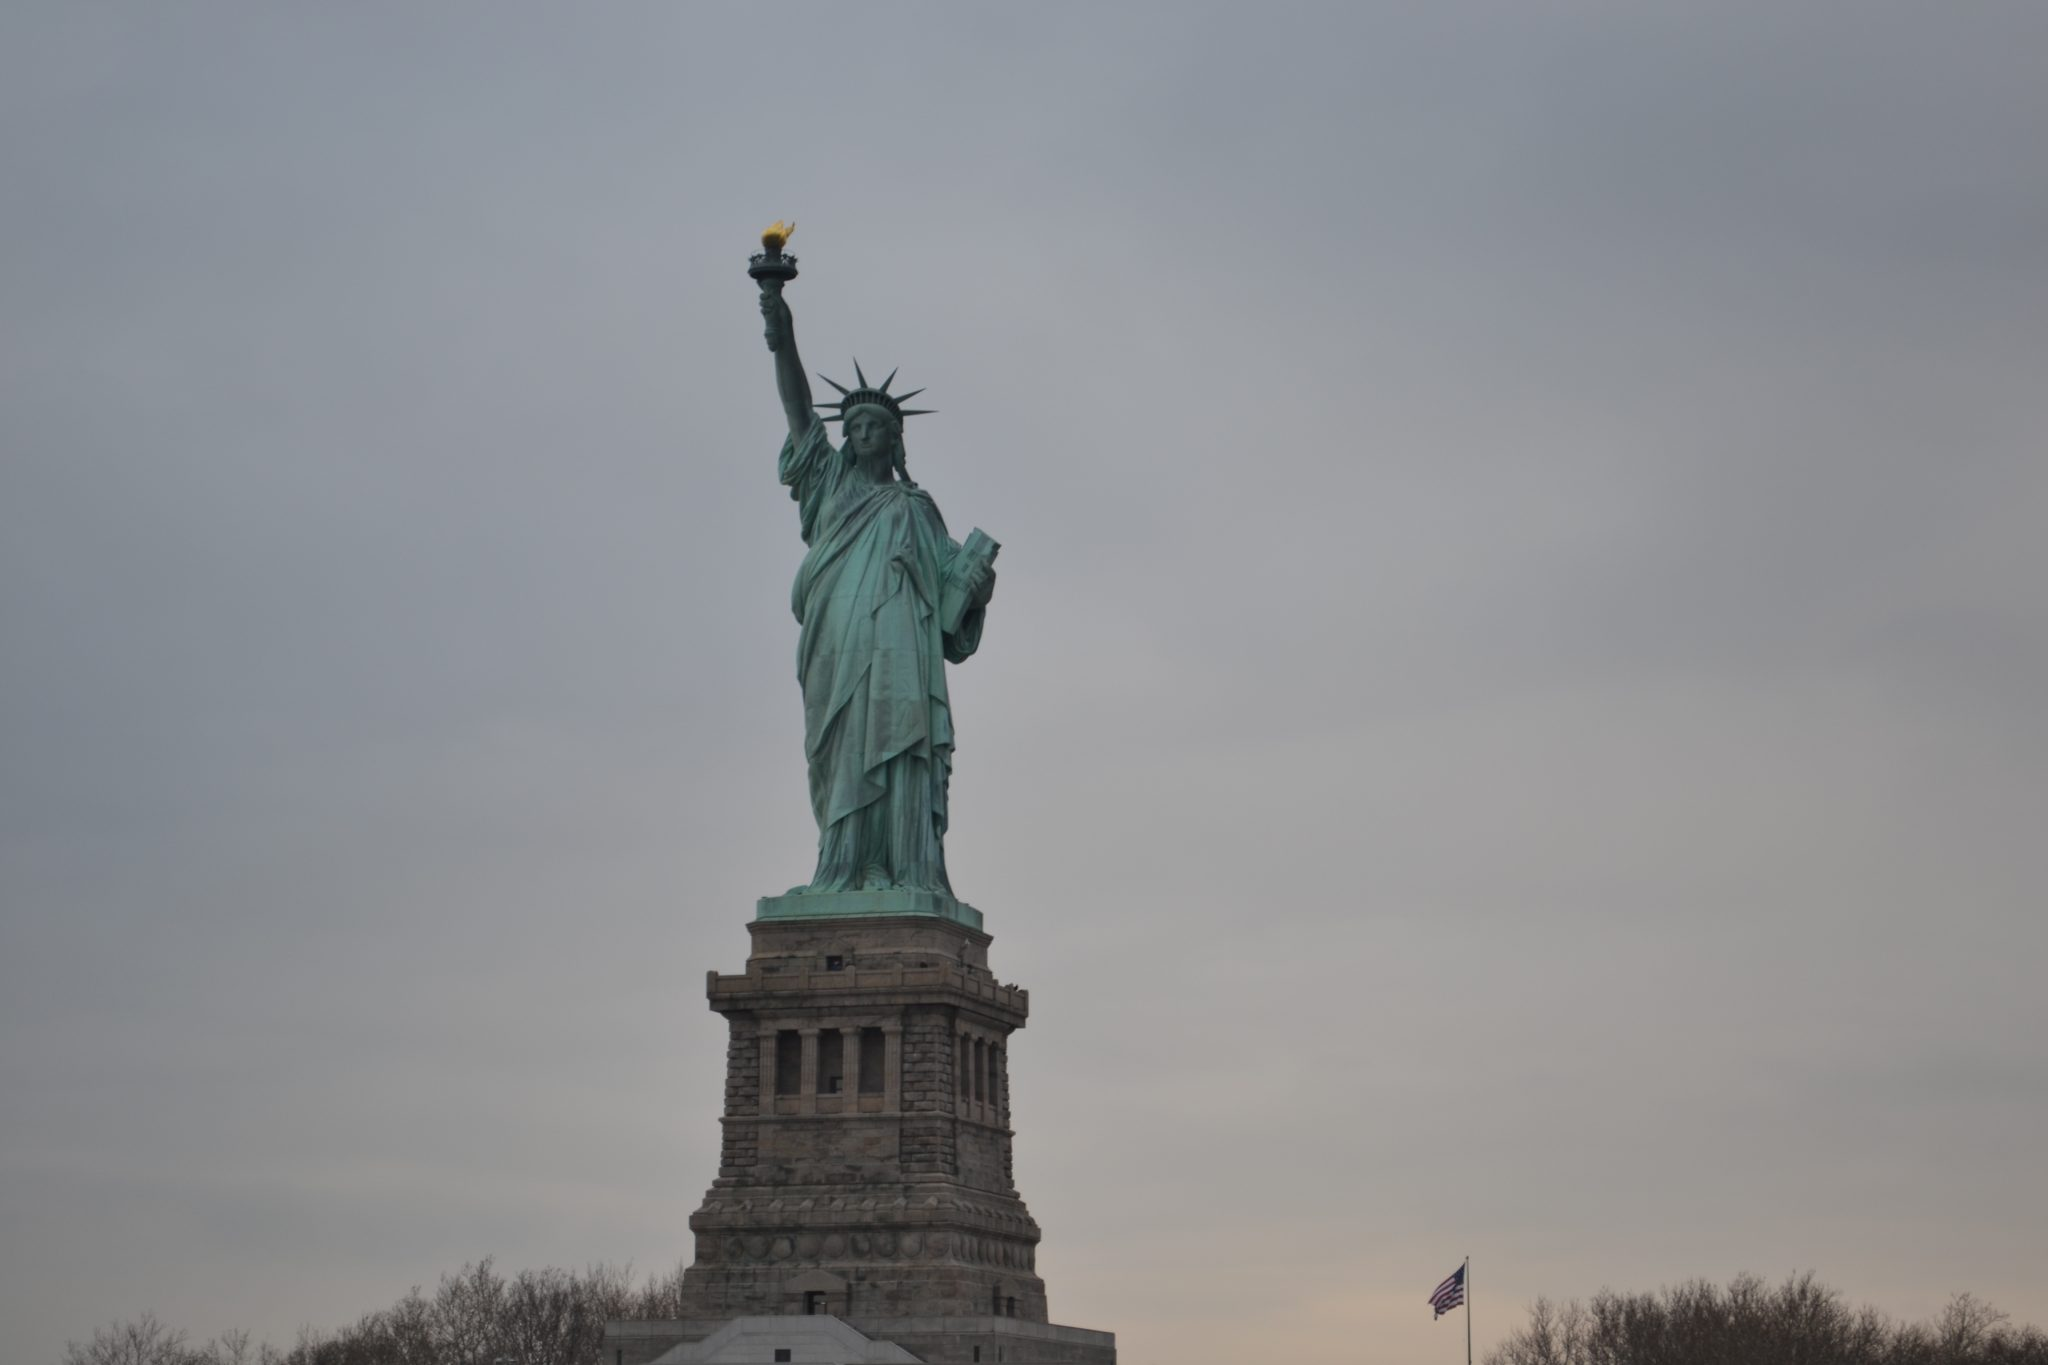 New York Part 4: Ellis Island & Statue of Liberty - dsc 0420